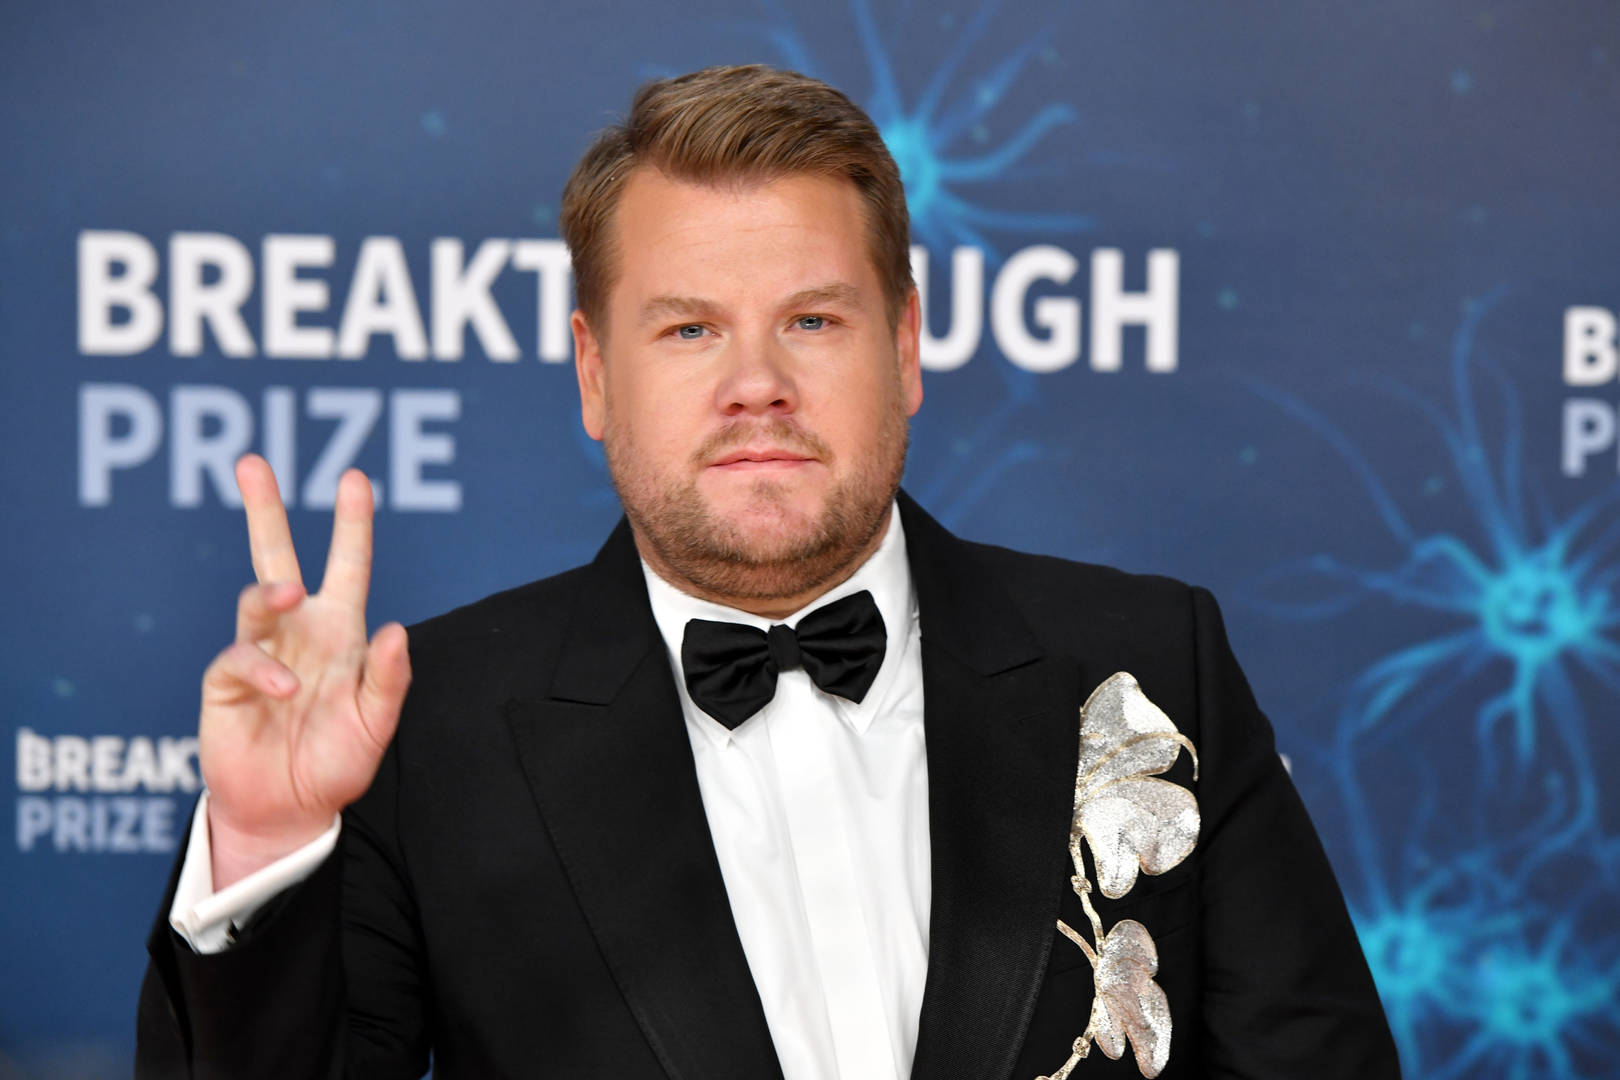 James Corden Wants to Lose Weight For The Sake of His Family